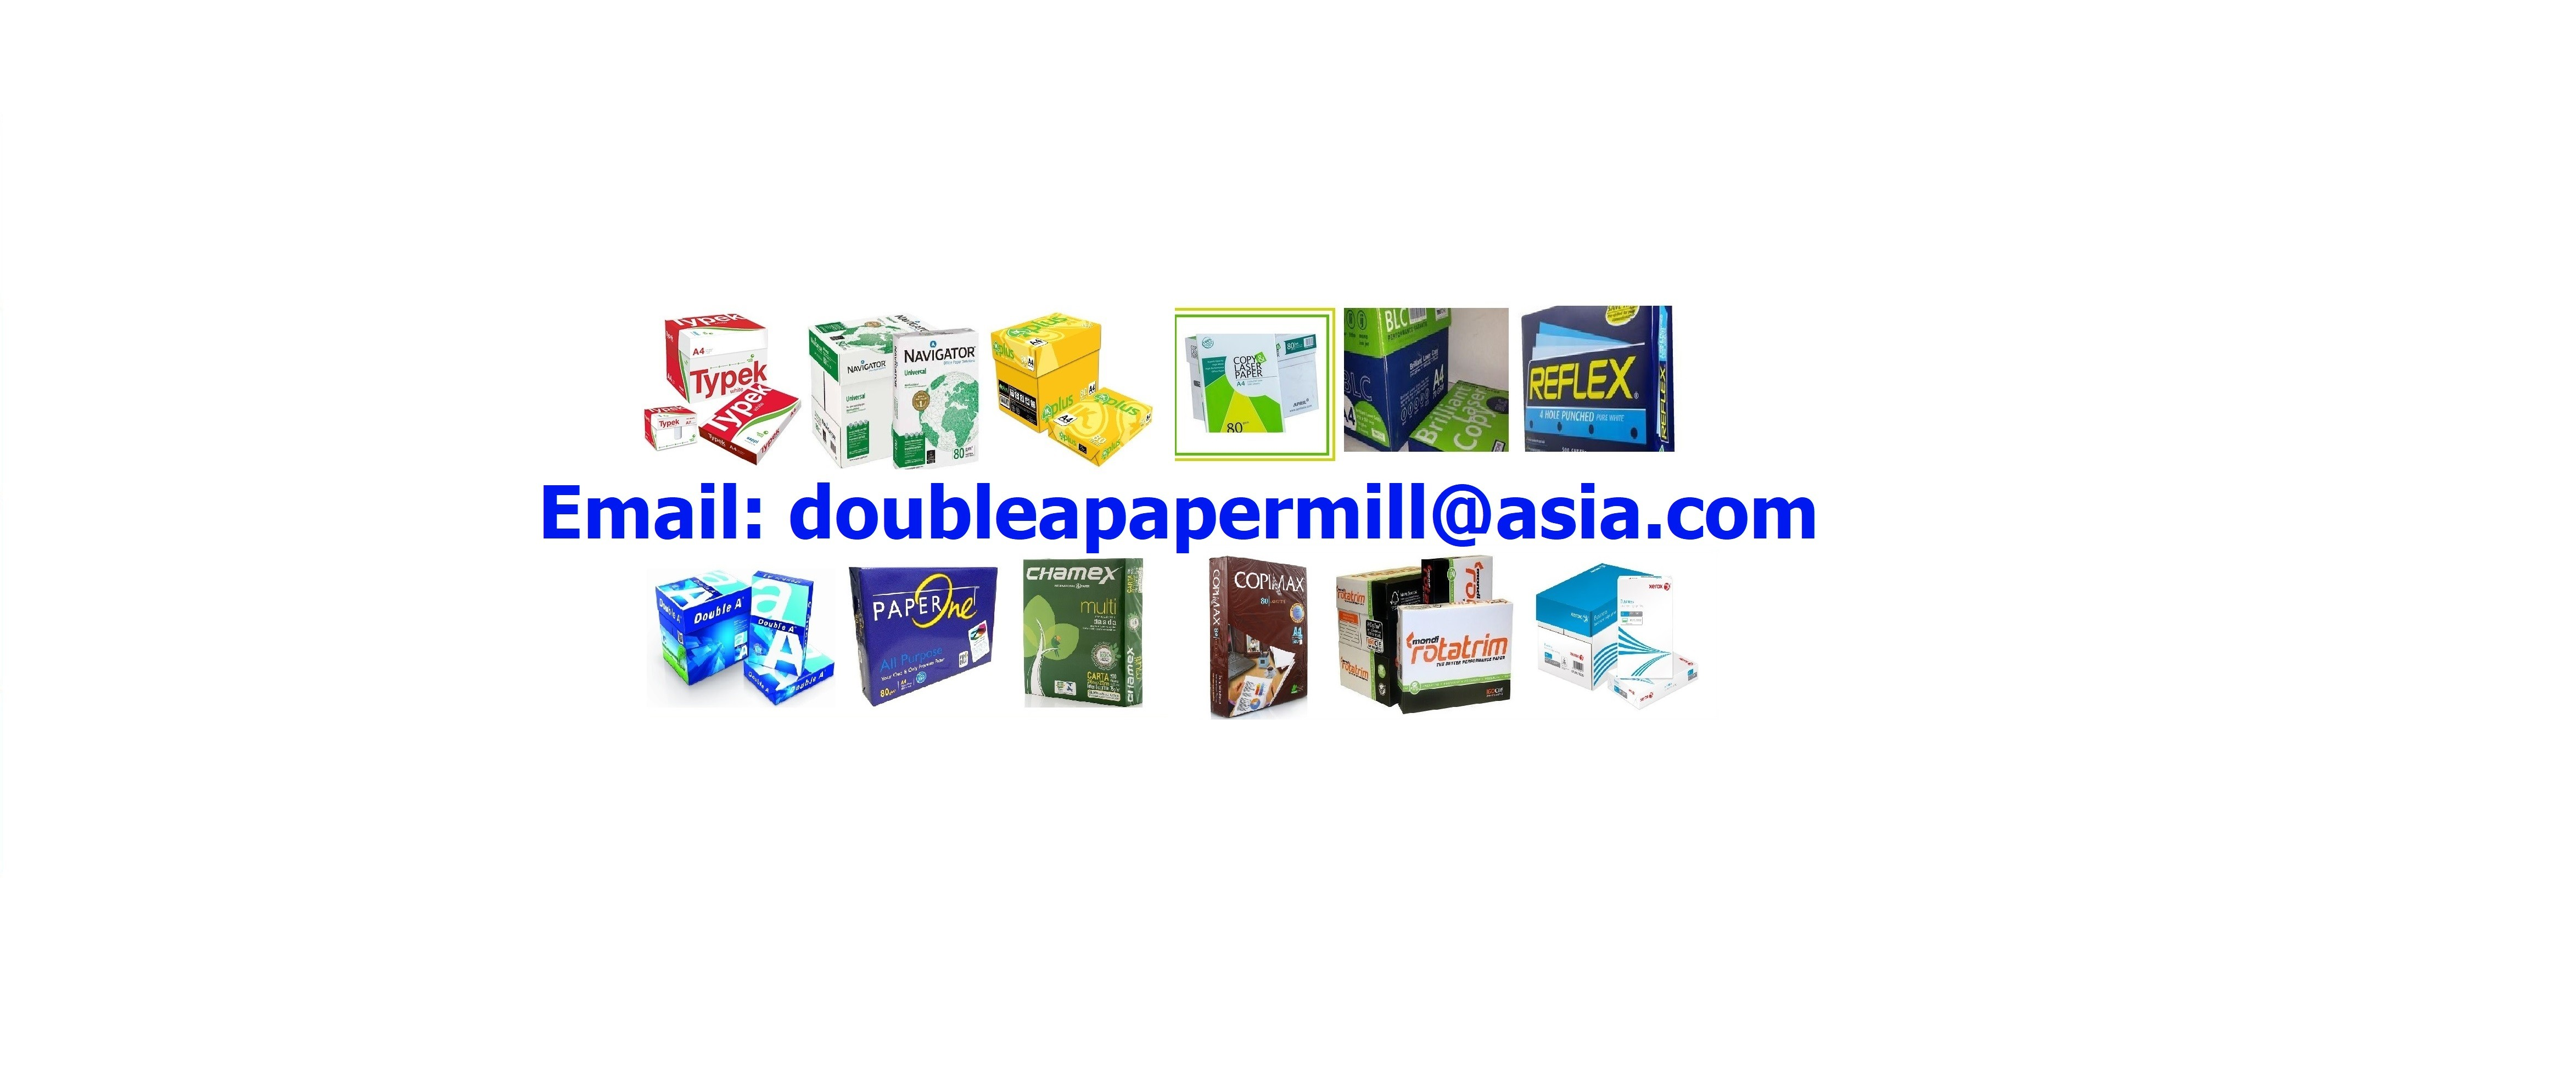 DOUBLE A PAPER MILL THAILAND | LinkedIn